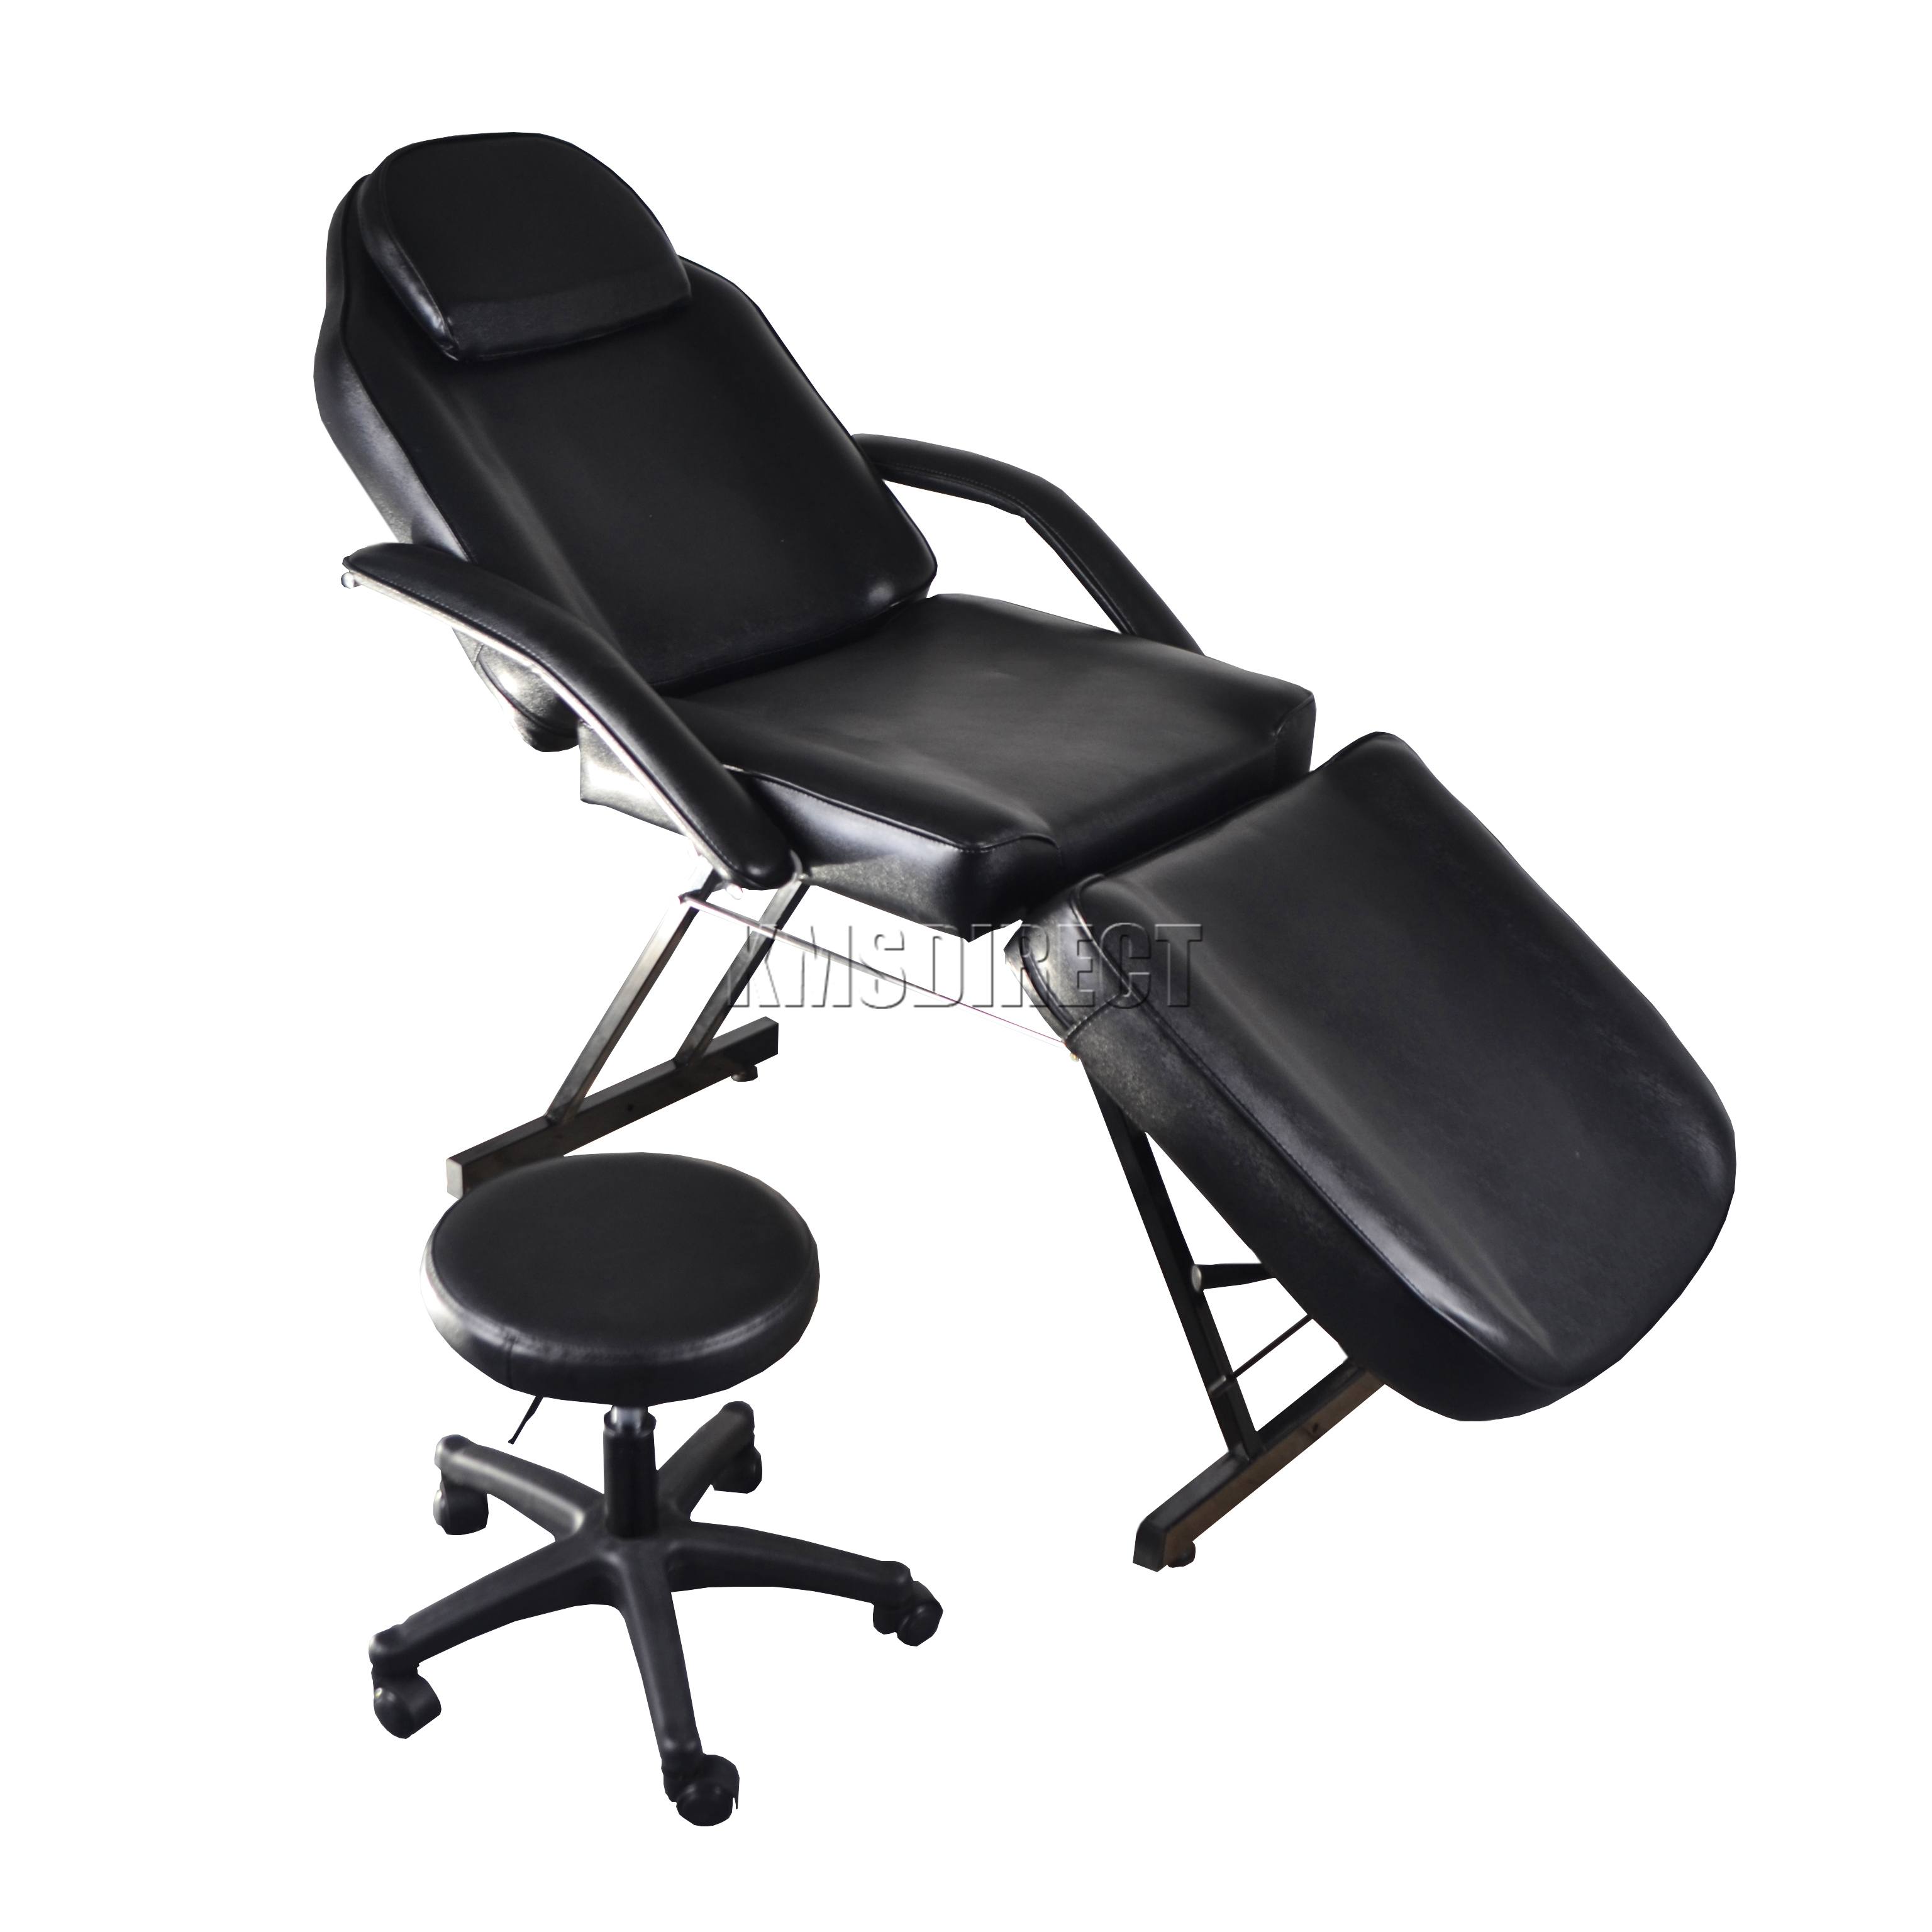 Massage Table And Chair foxhunter beauty salon chair massage table tattoo therapy couch